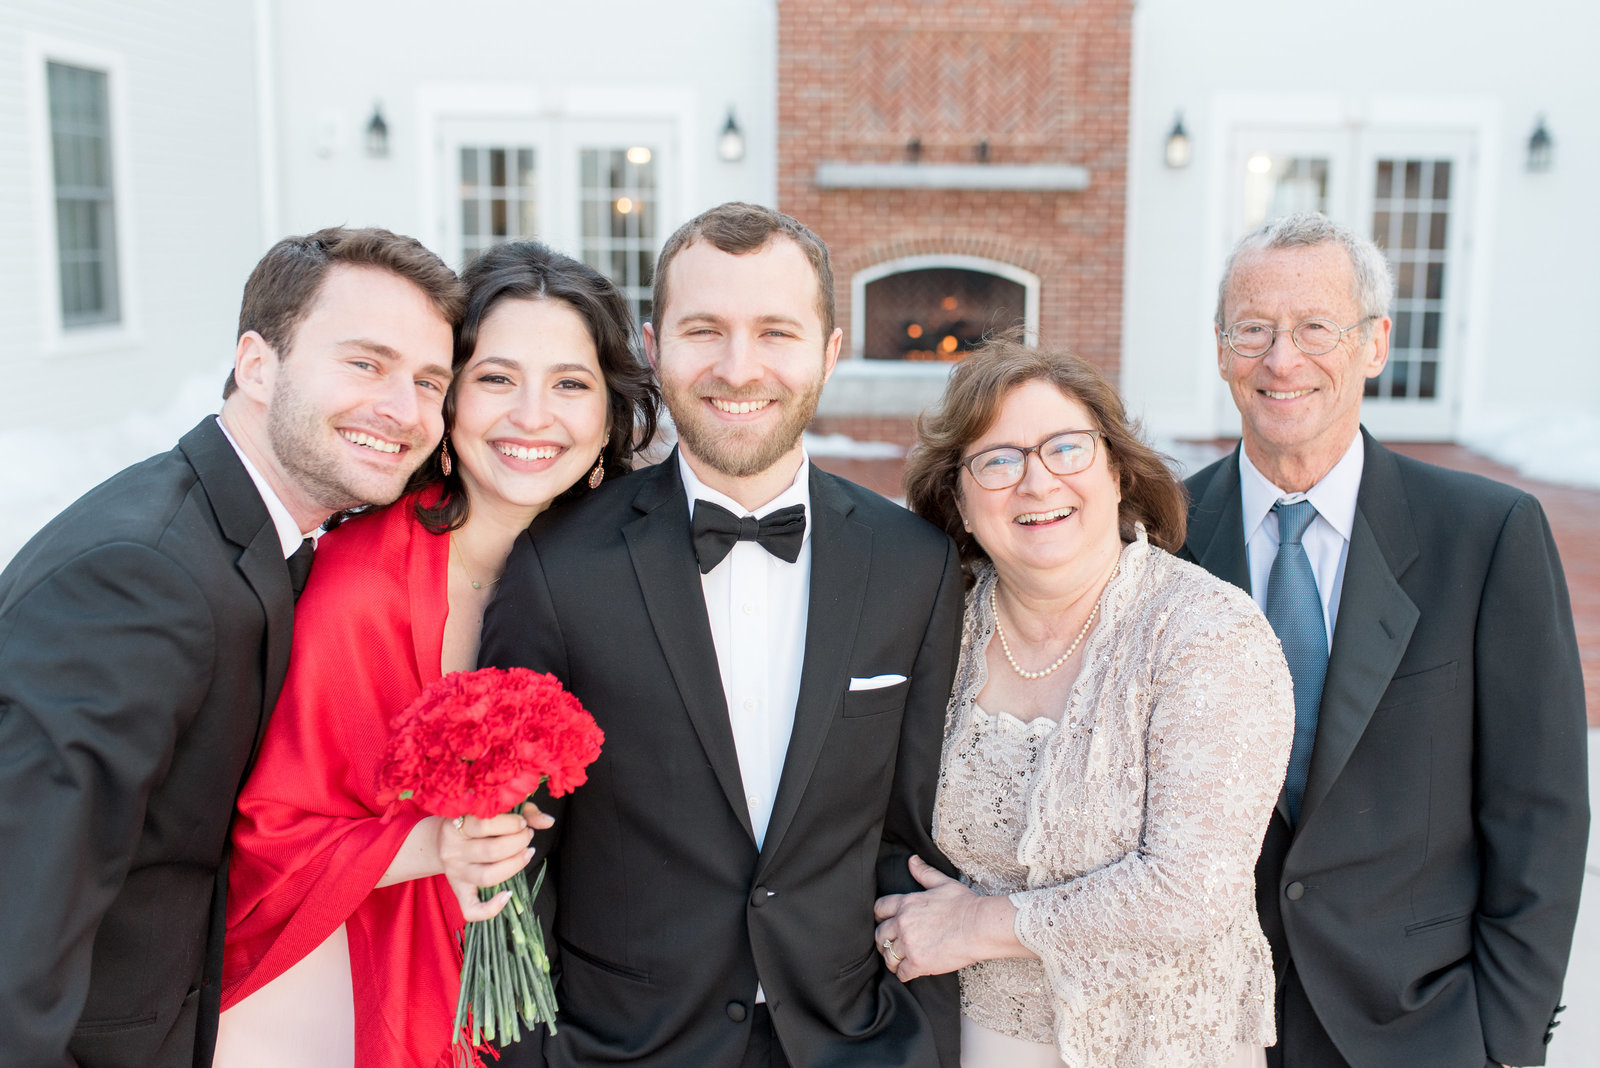 Groom's Family Photo